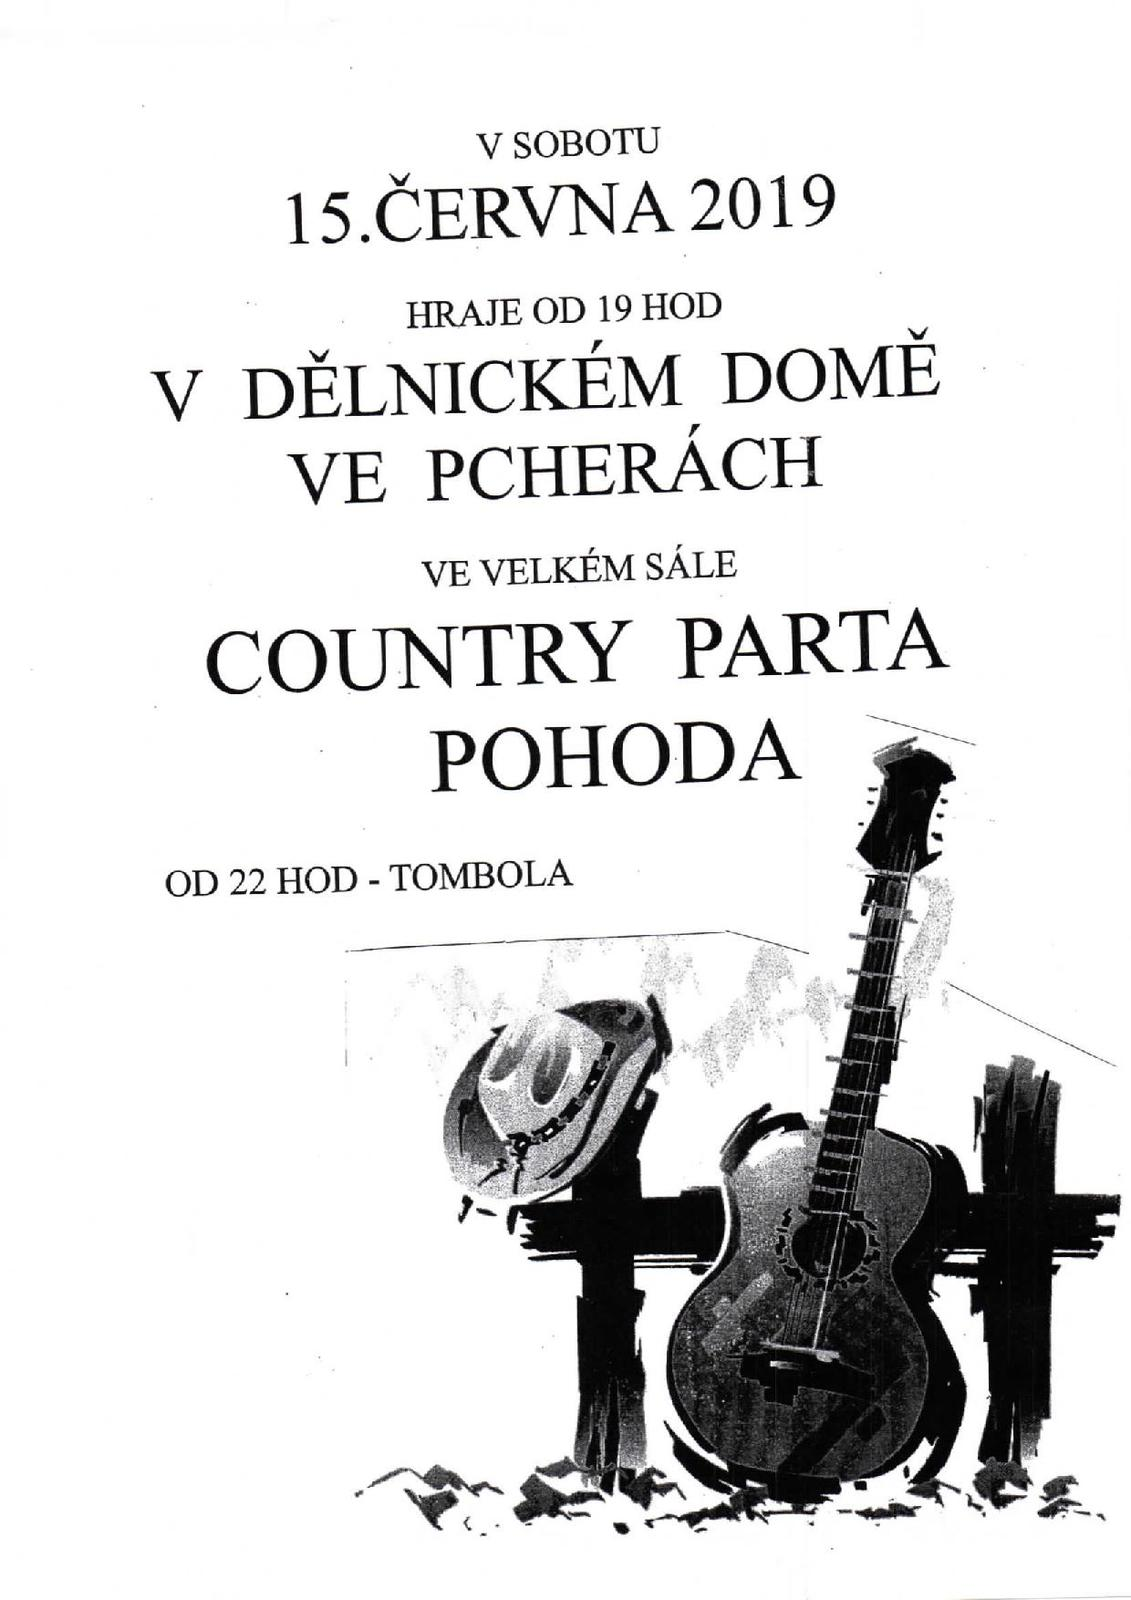 Country parta pohoda